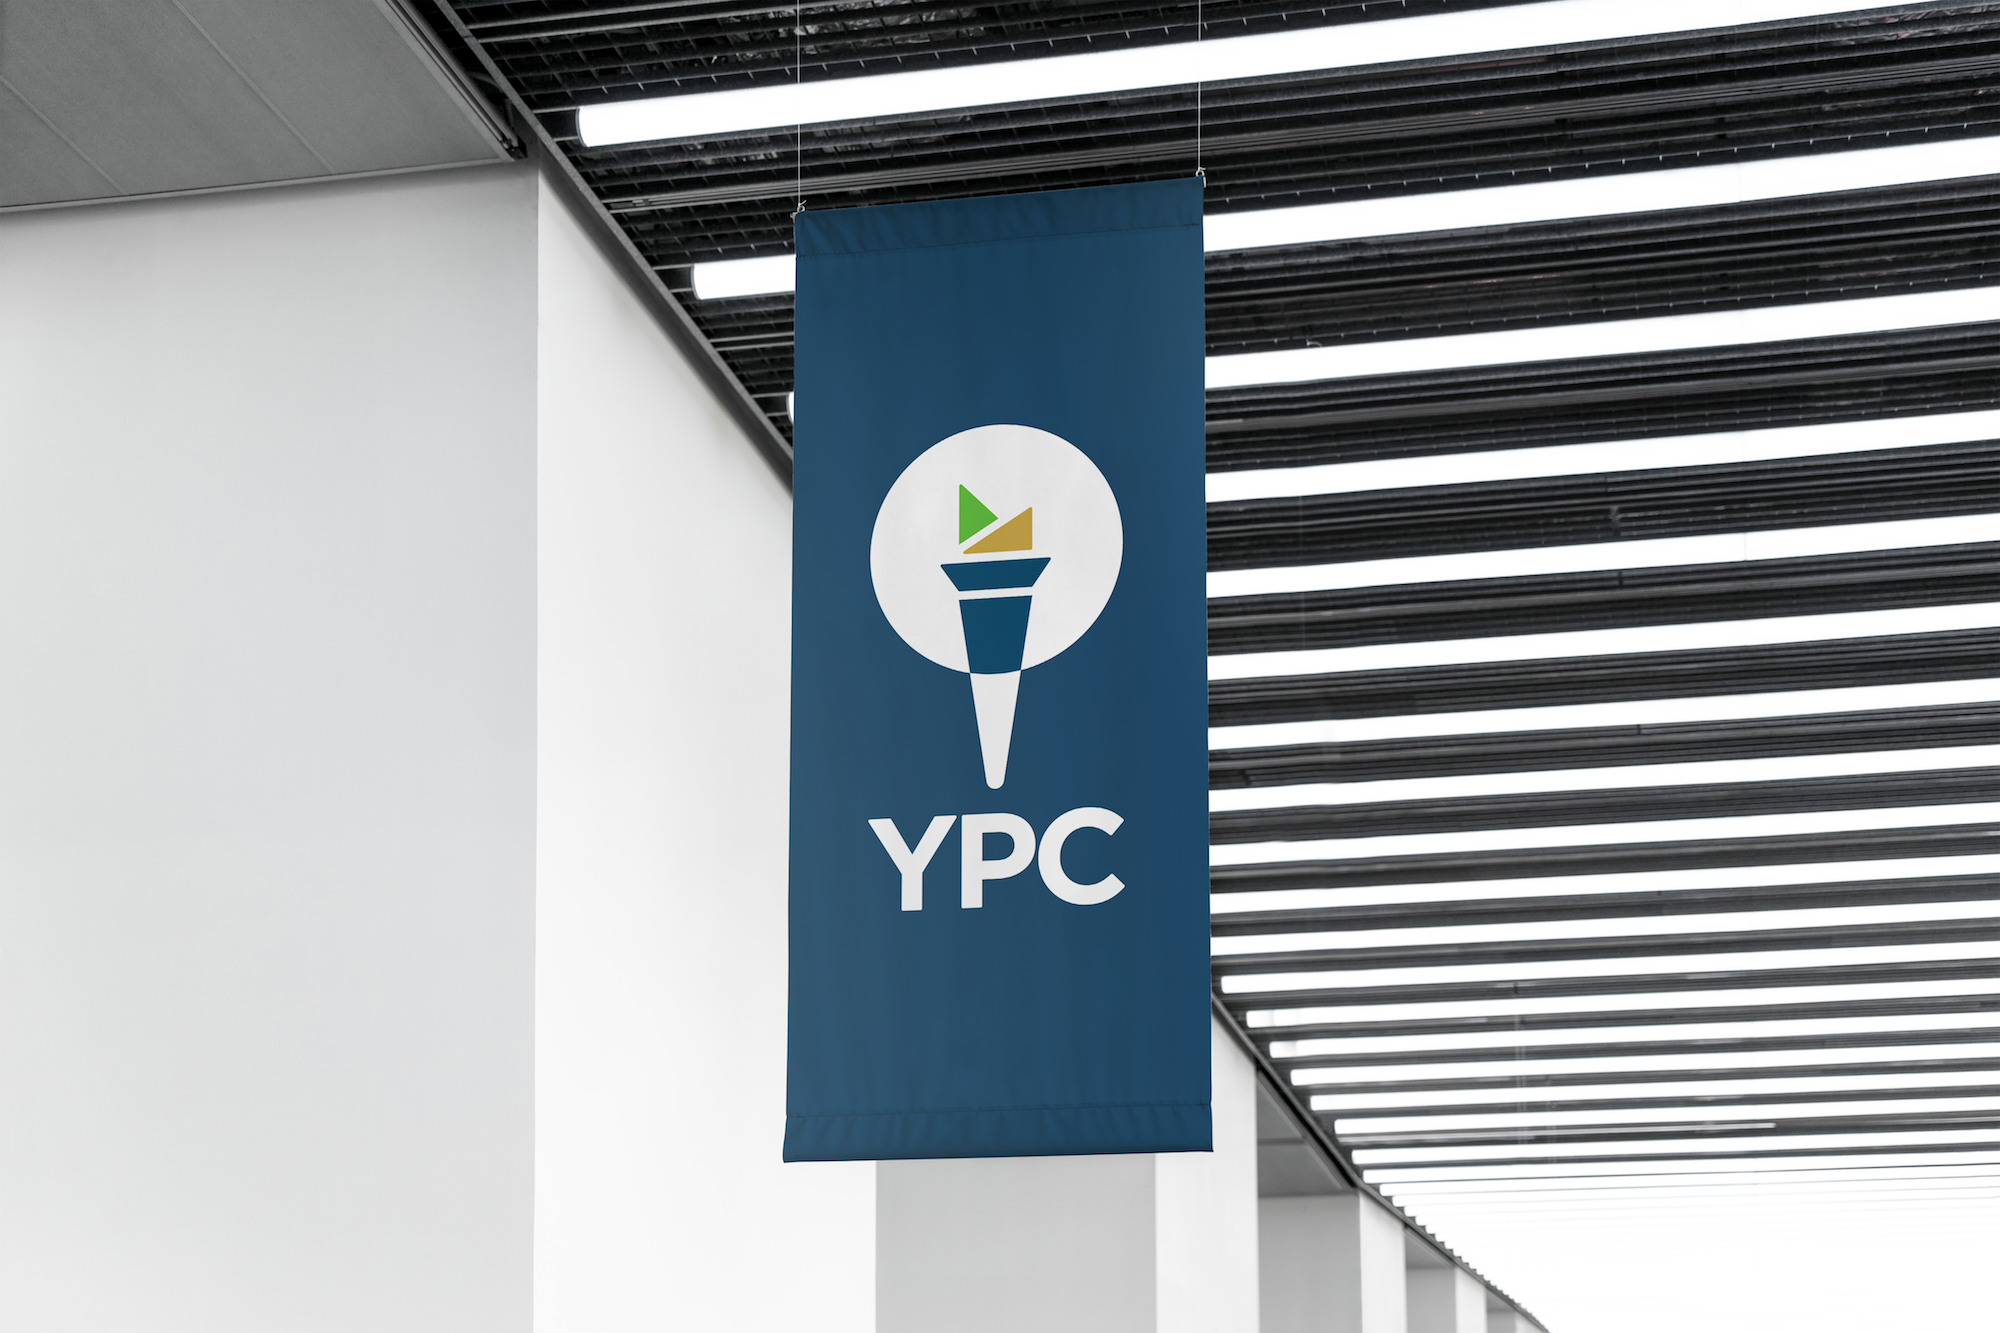 Mockup of a banner featuring the YPC logo